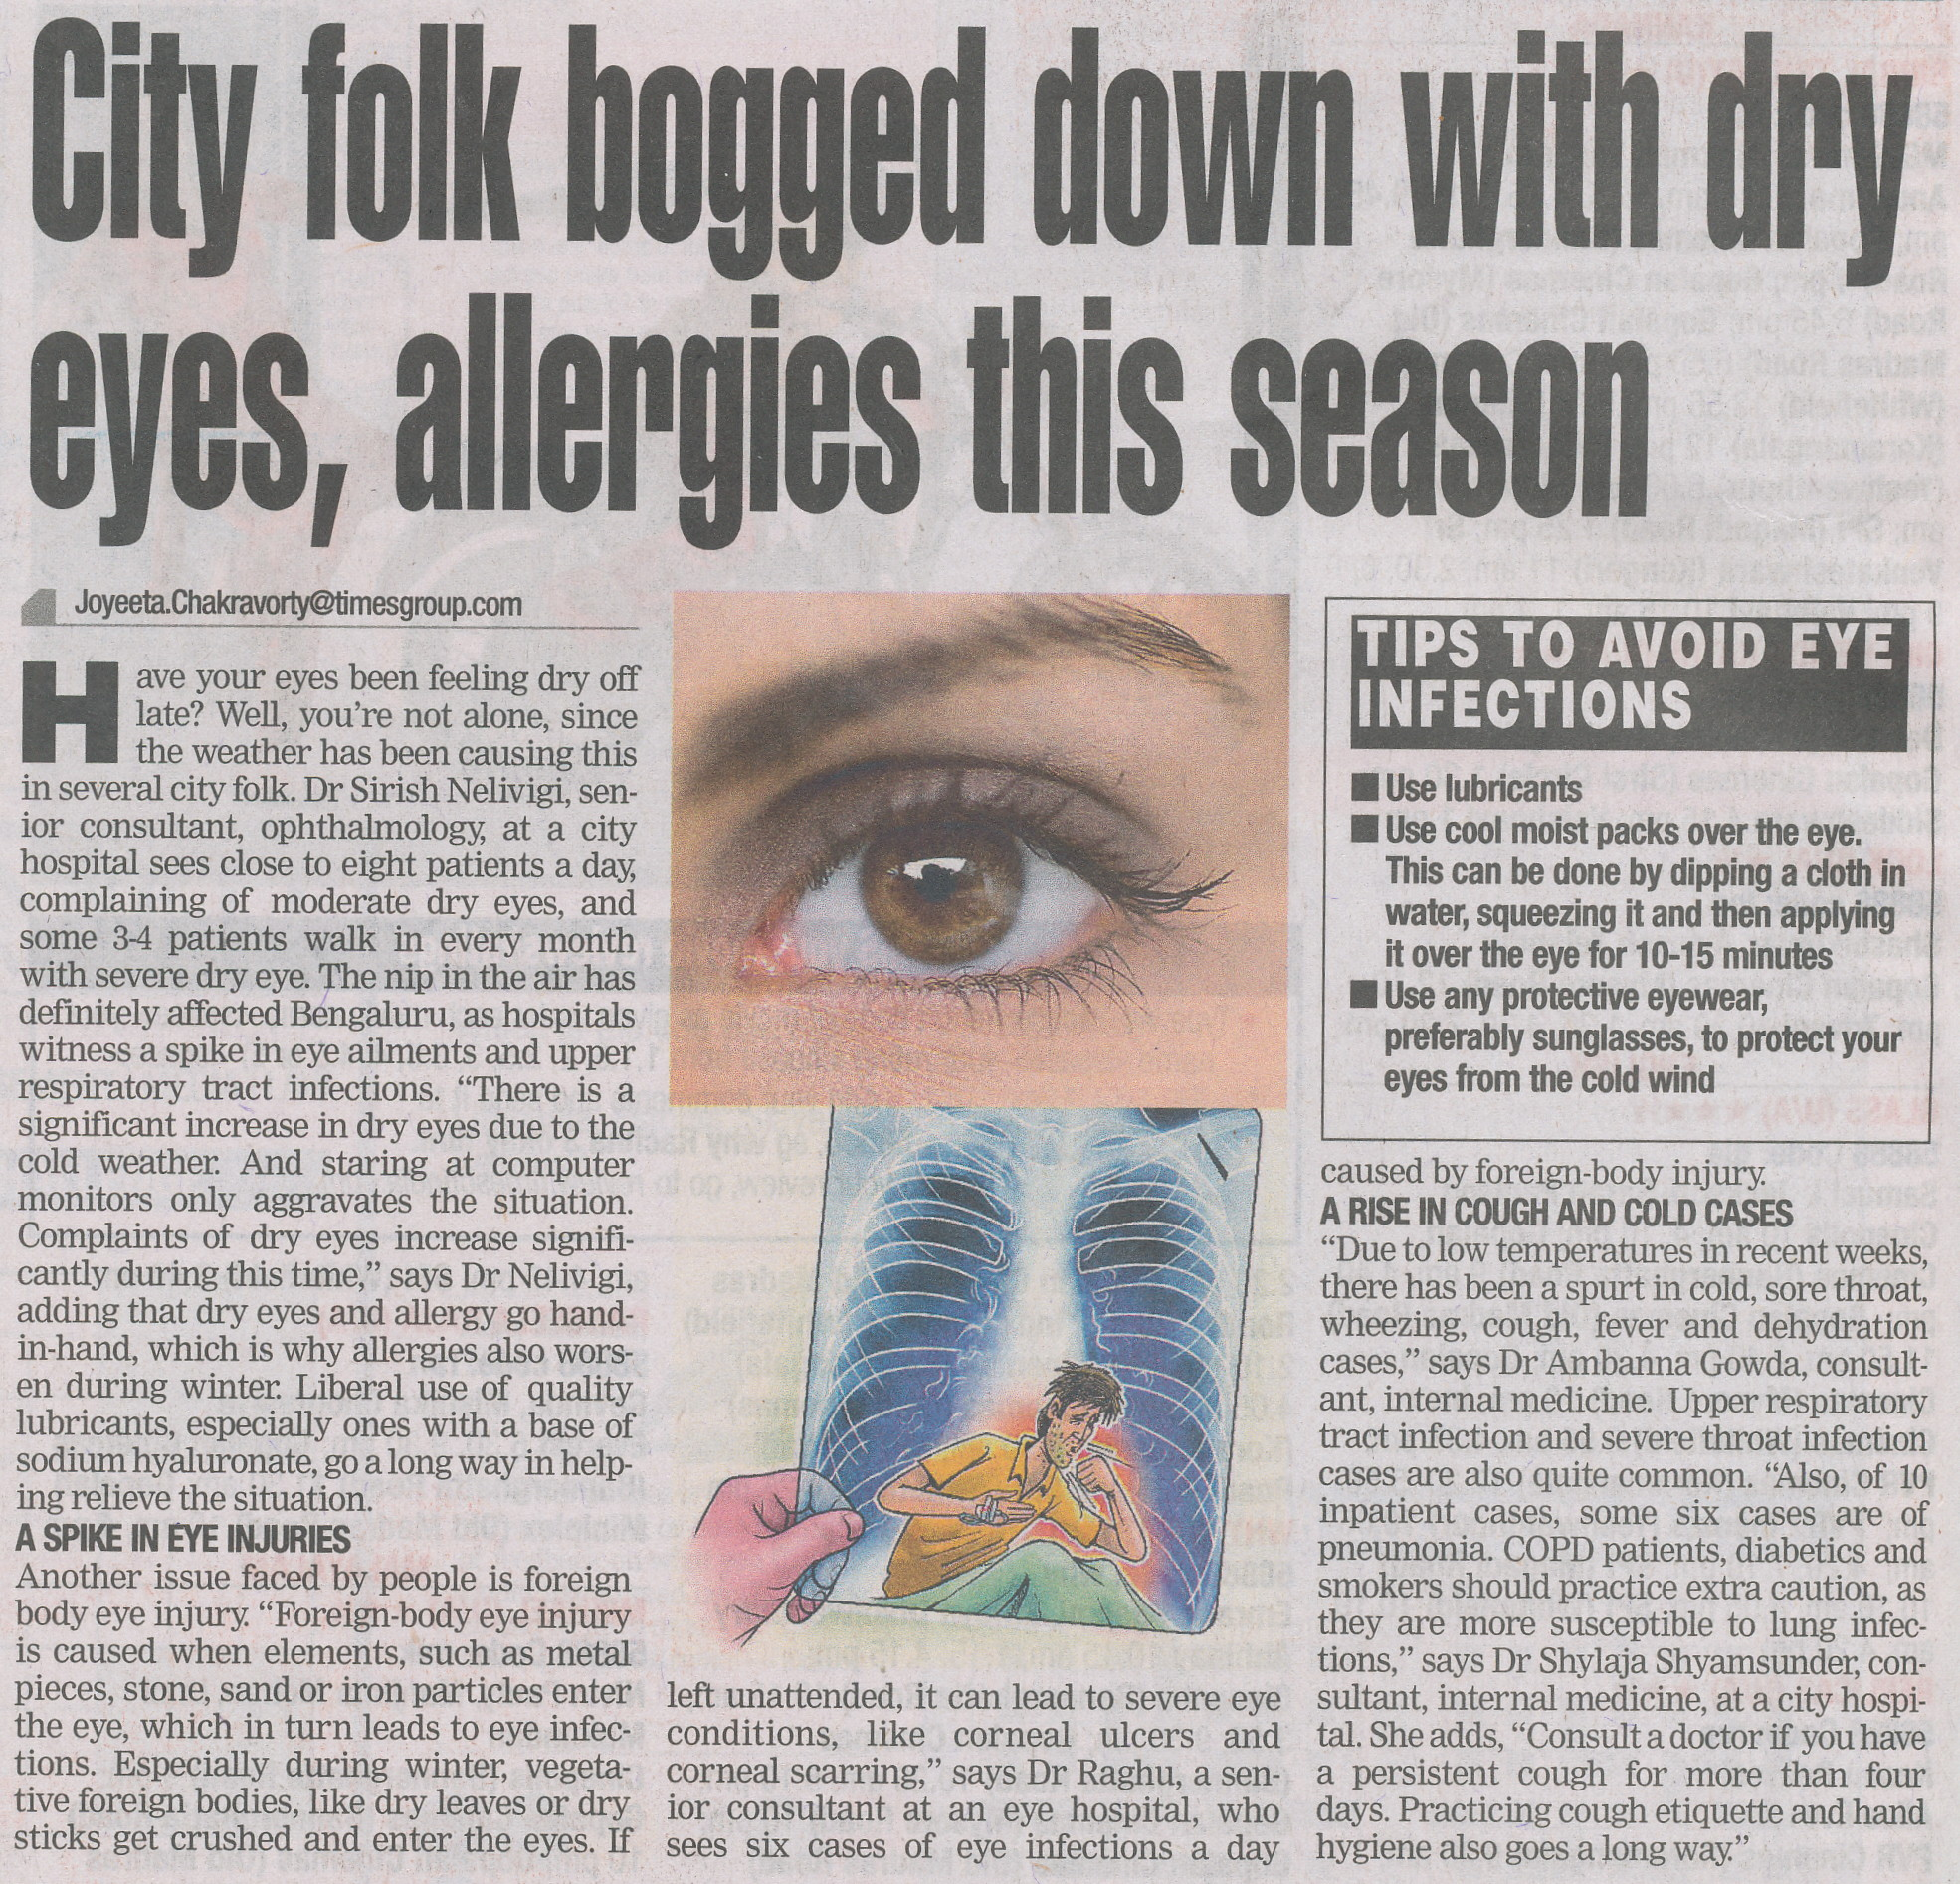 City folk bogged down with dry eyes, allergies this season